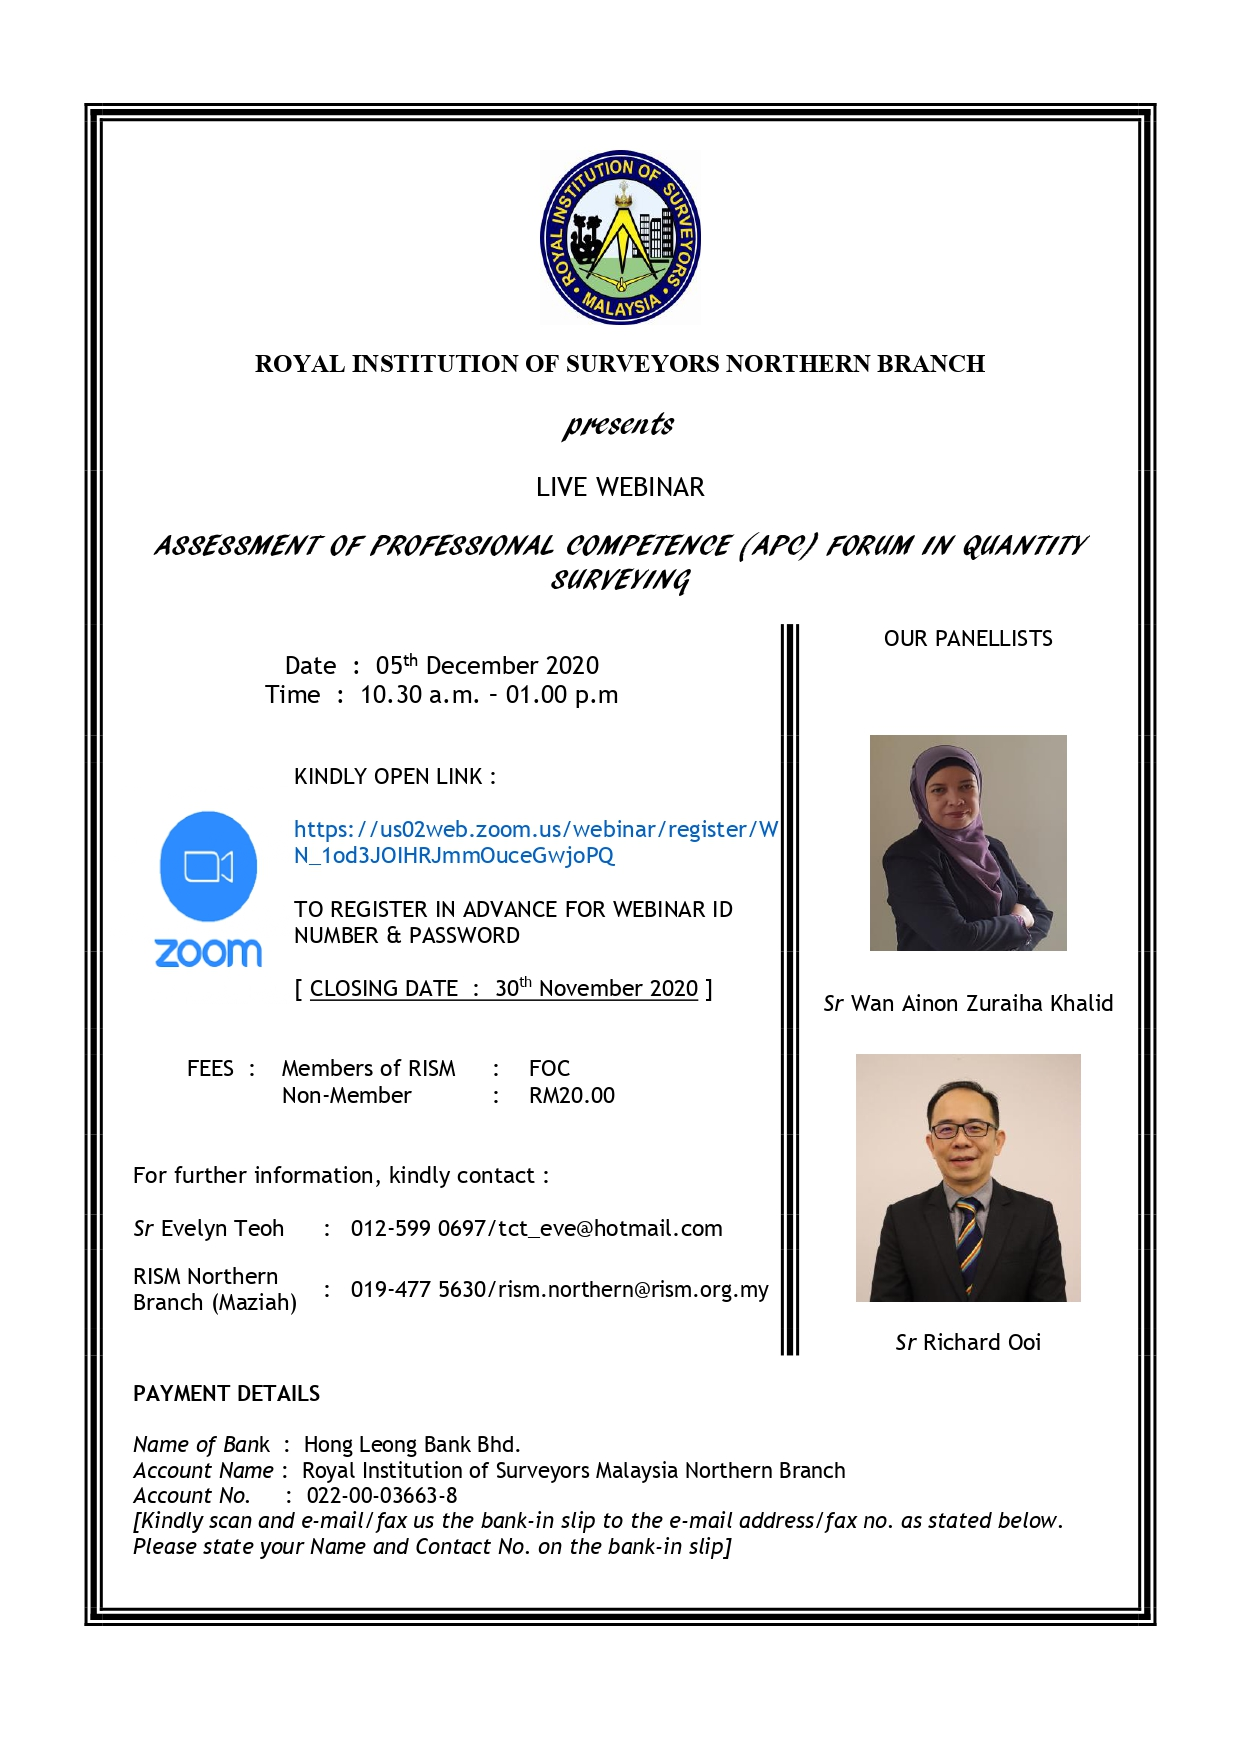 ASSESSMENT OF PROFESSIONAL COMPETENCE (APC) FORUM IN QUANTITY SURVEYING - LIVE WEBINAR